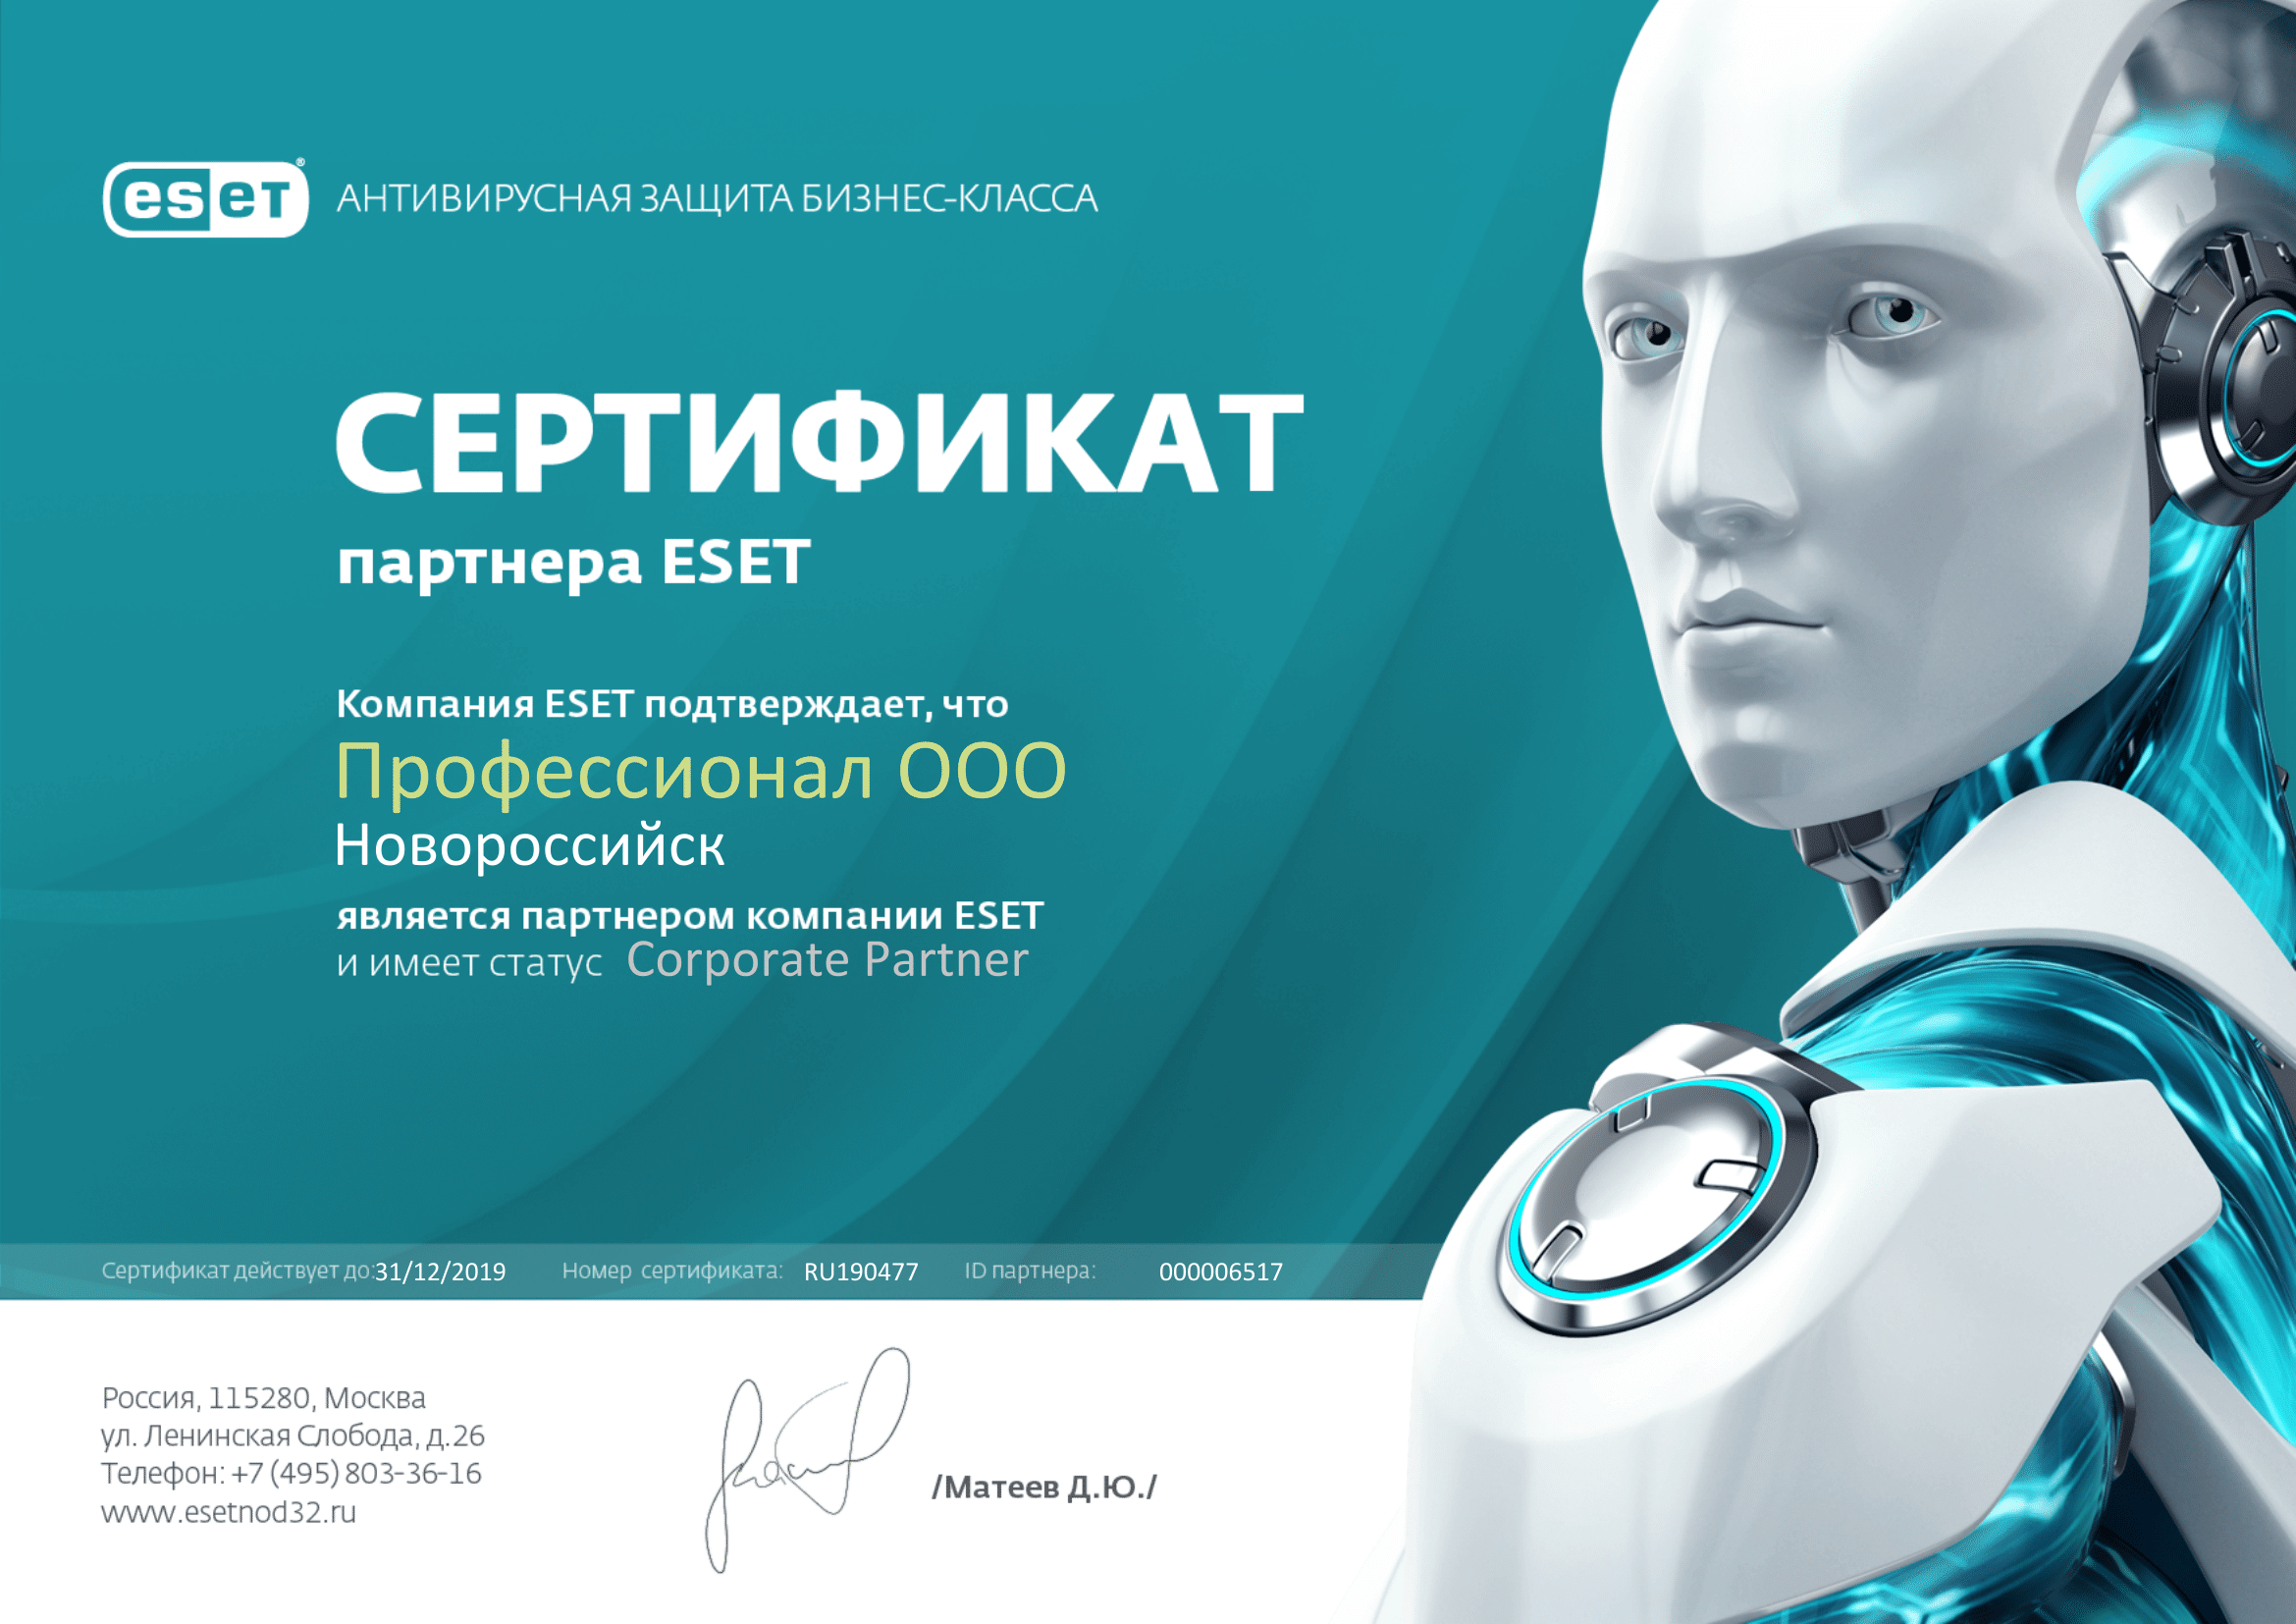 "Партнерский сертификат ООО ""Профессионал"" - ESET Corporate Partner 2019"